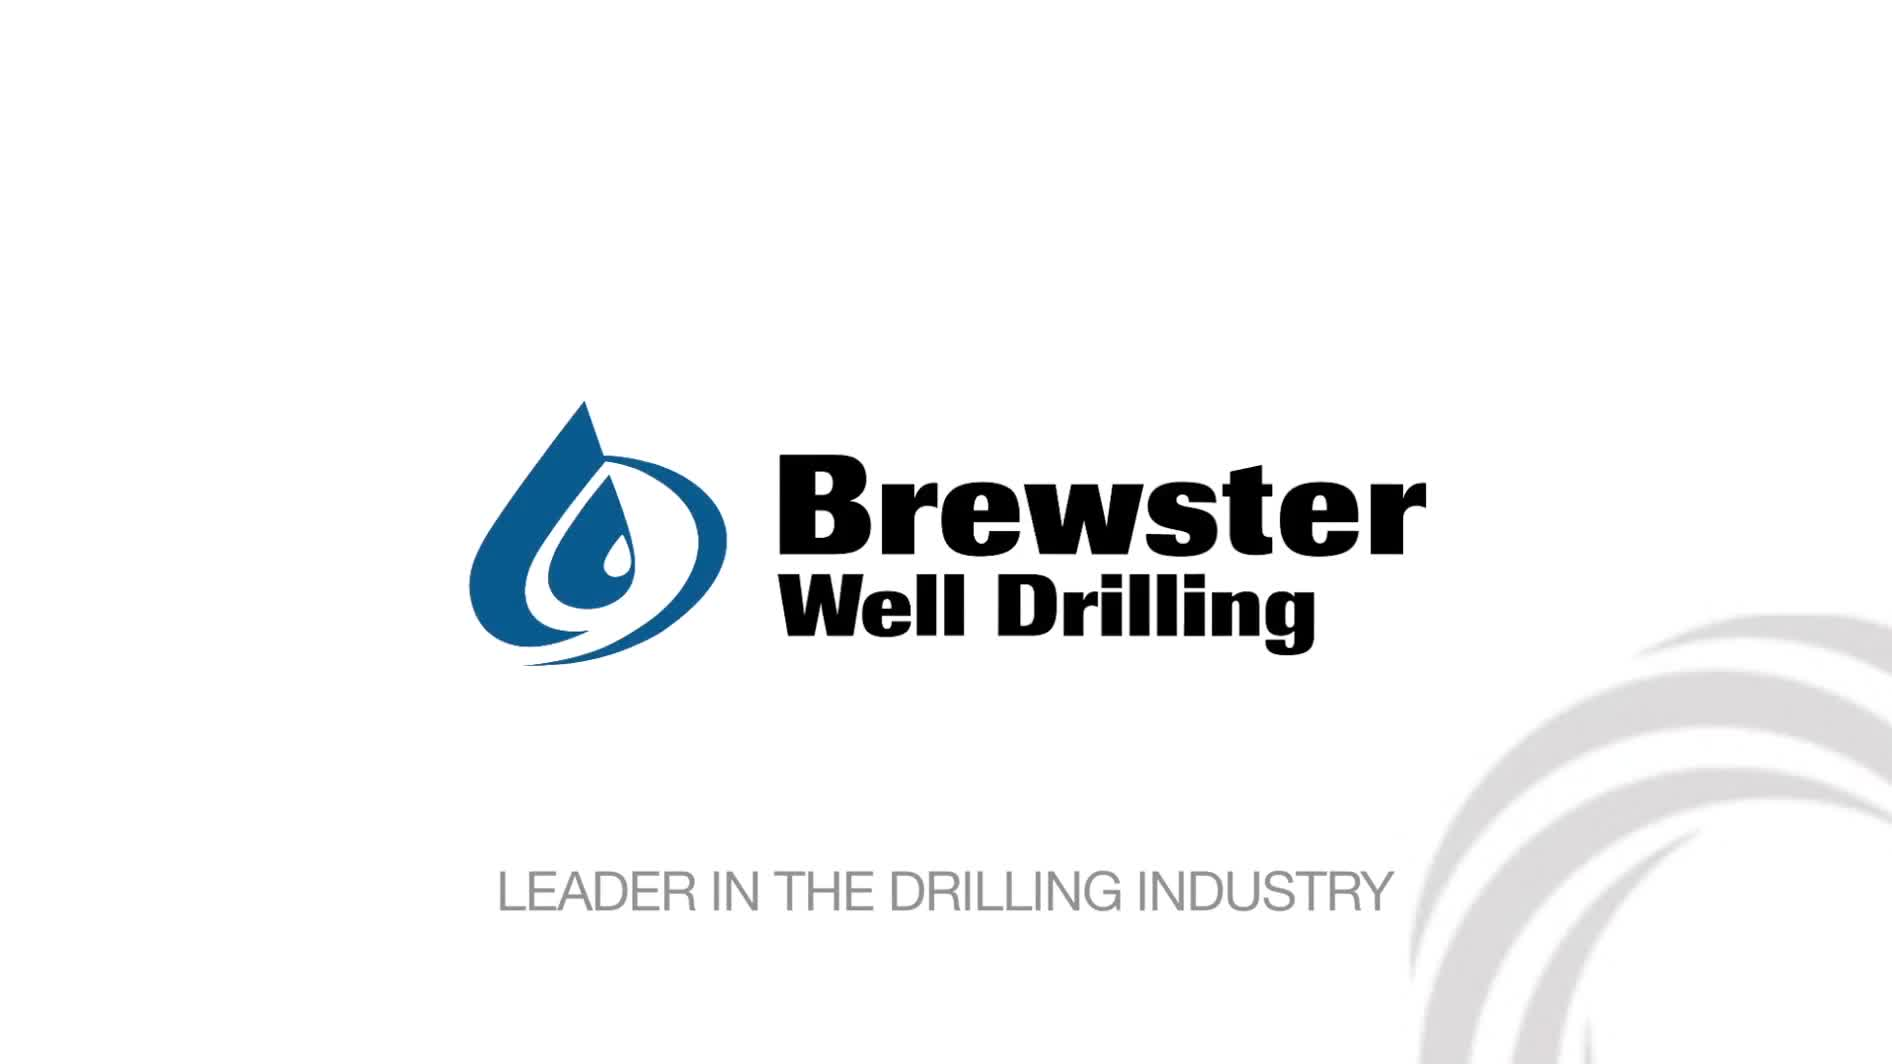 Brewster Well Drilling - Well Drilling Services & Supplies - 902-866-0454